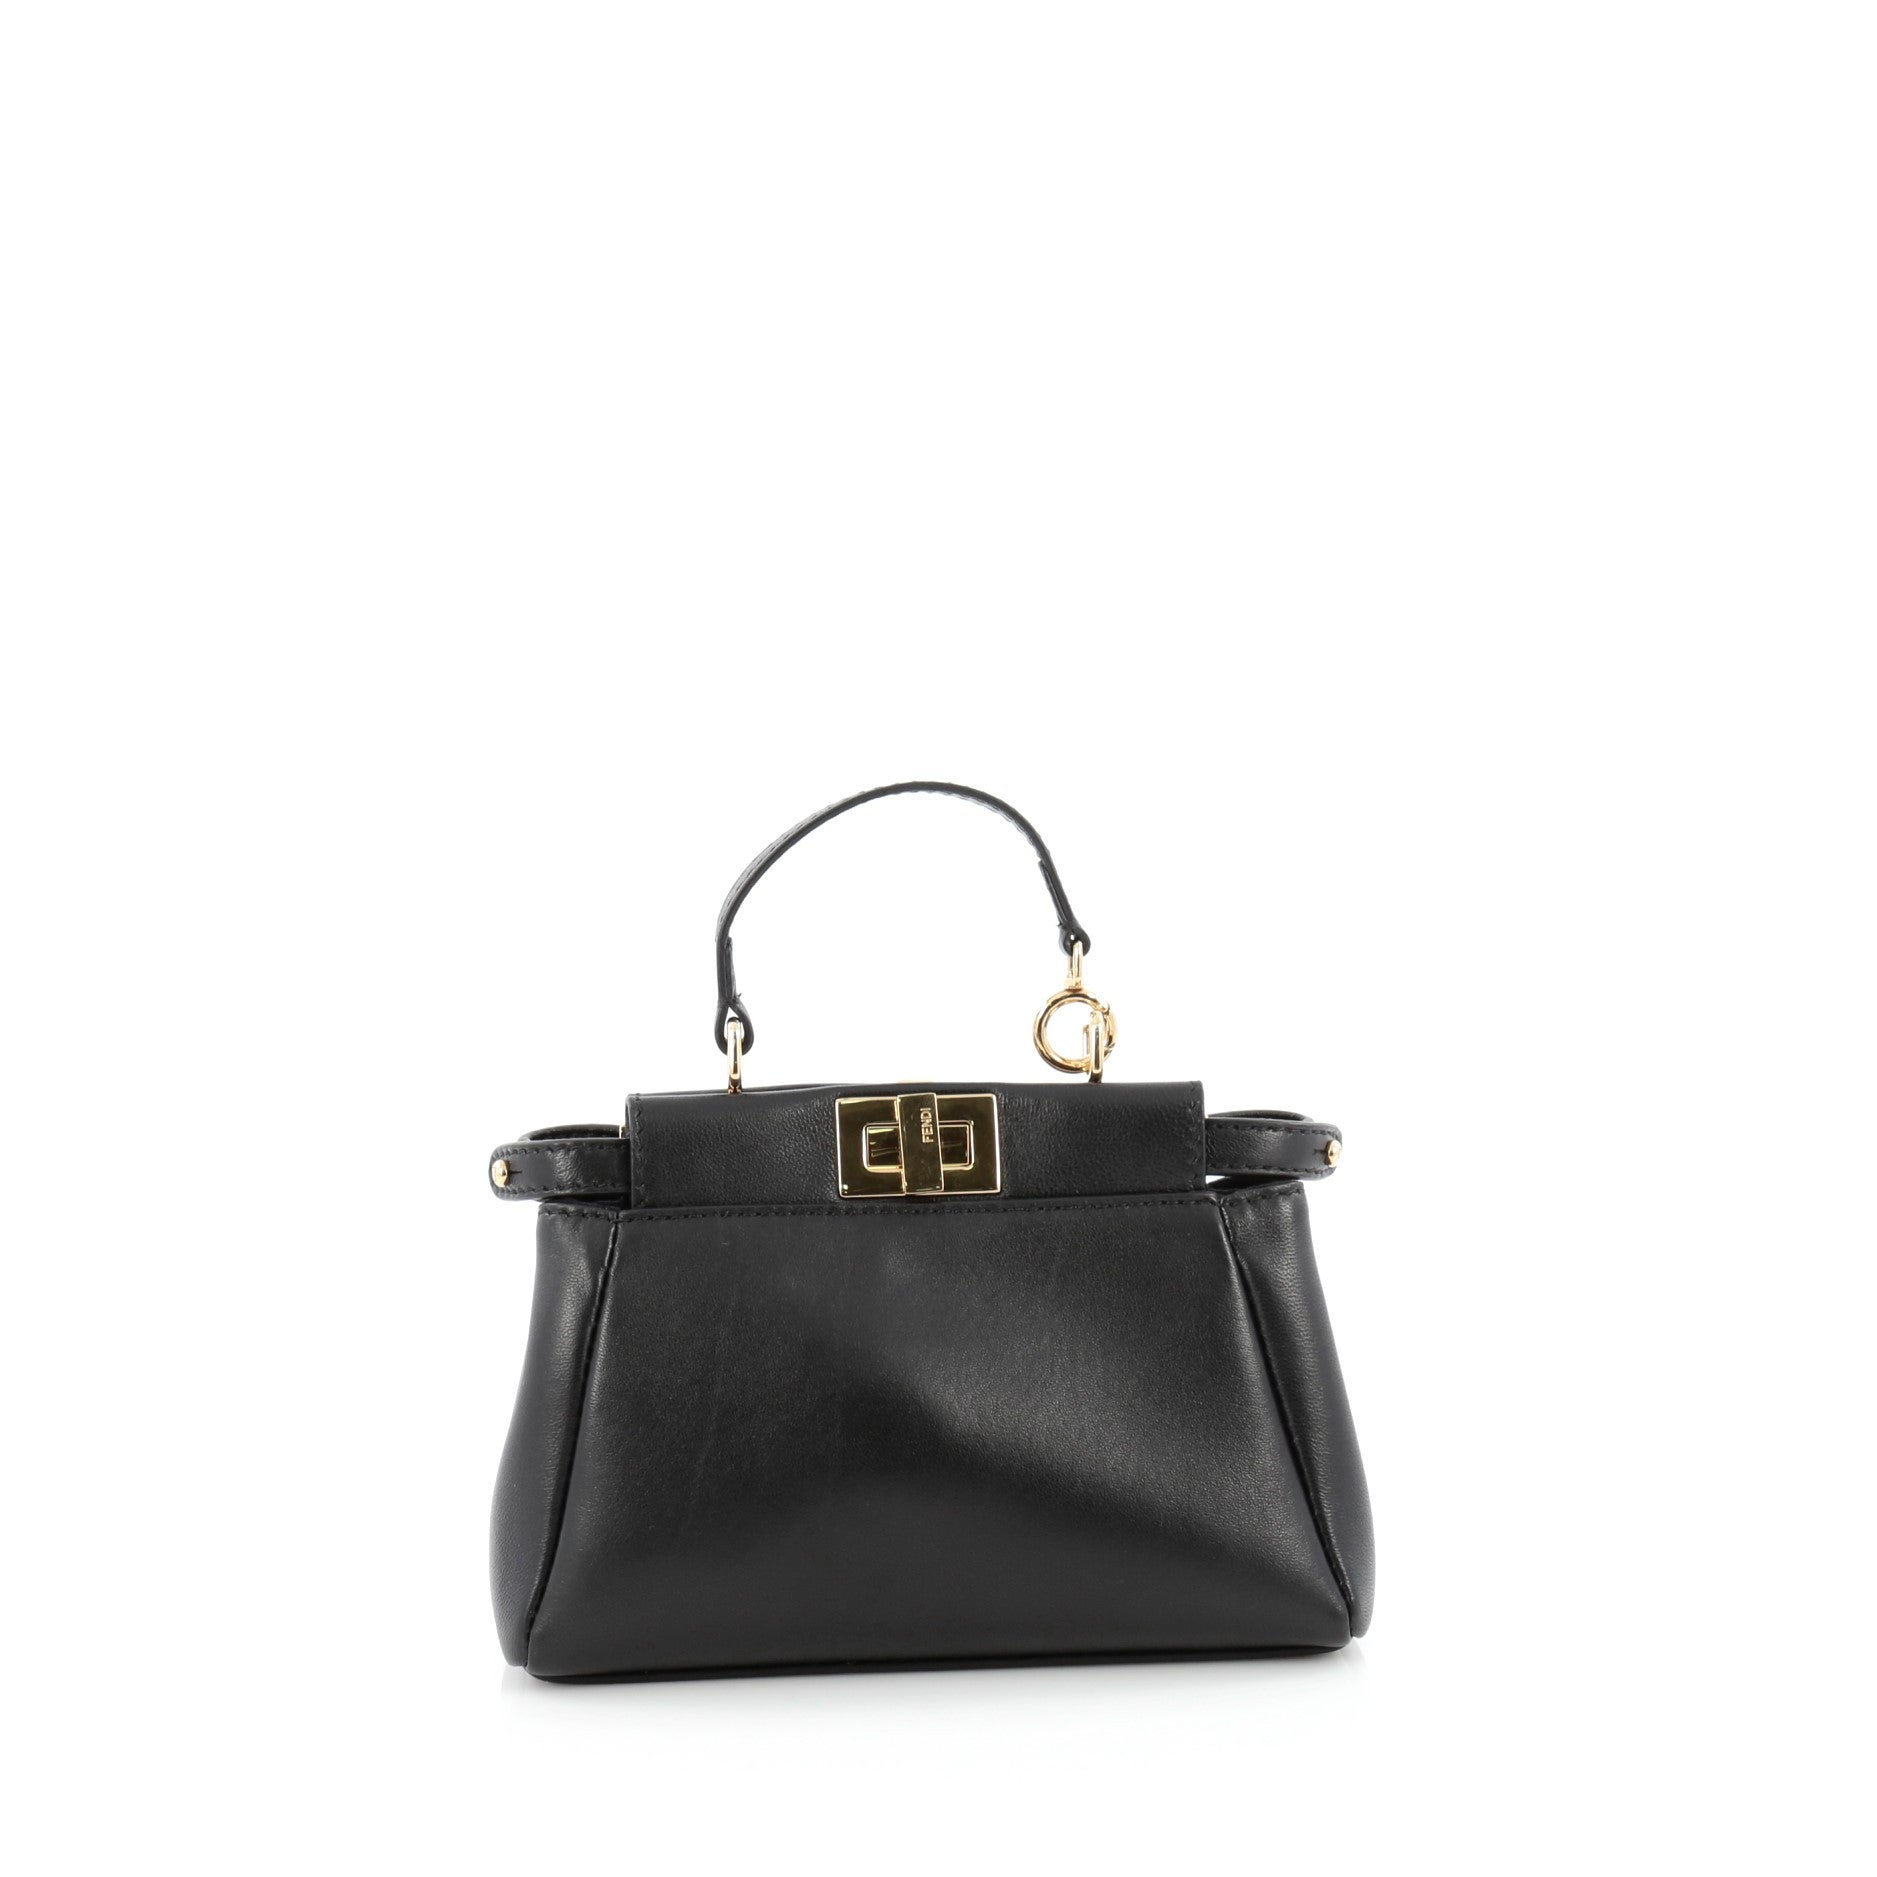 Fendi Peekaboo Handbag Leather Micro